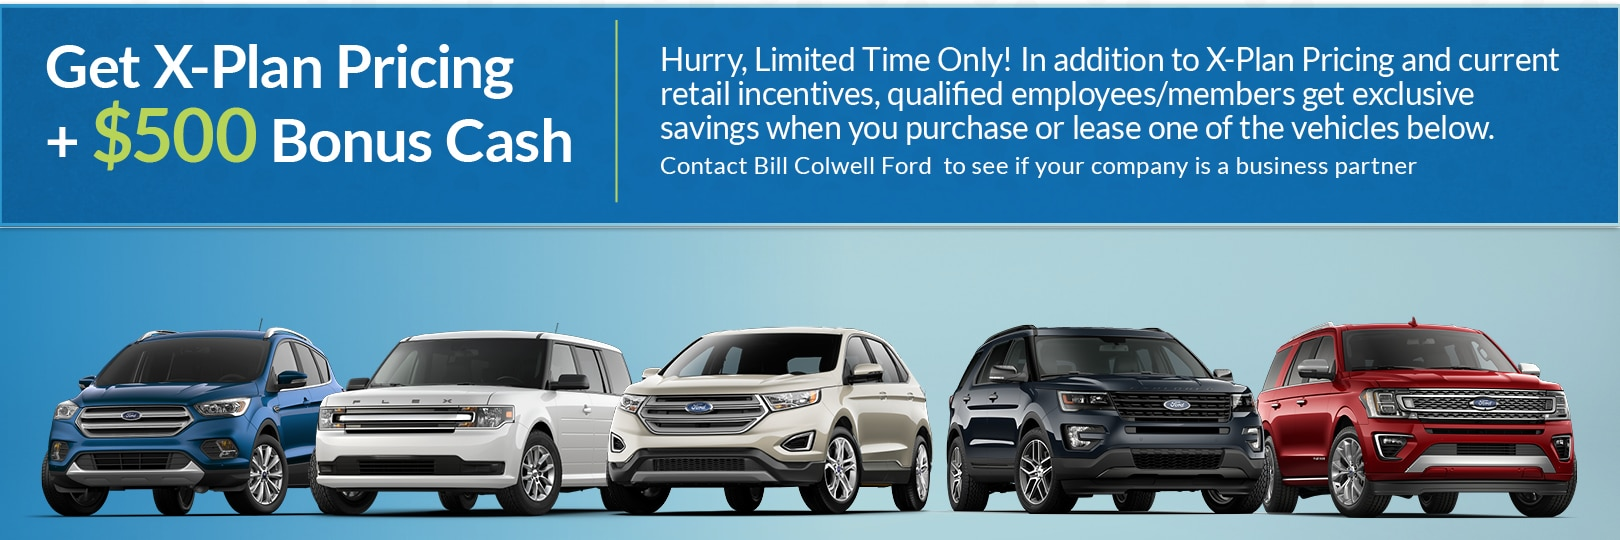 Bill Colwell Ford Inc New Ford Dealership In Hudson IA - Ford employee pricing vs invoice